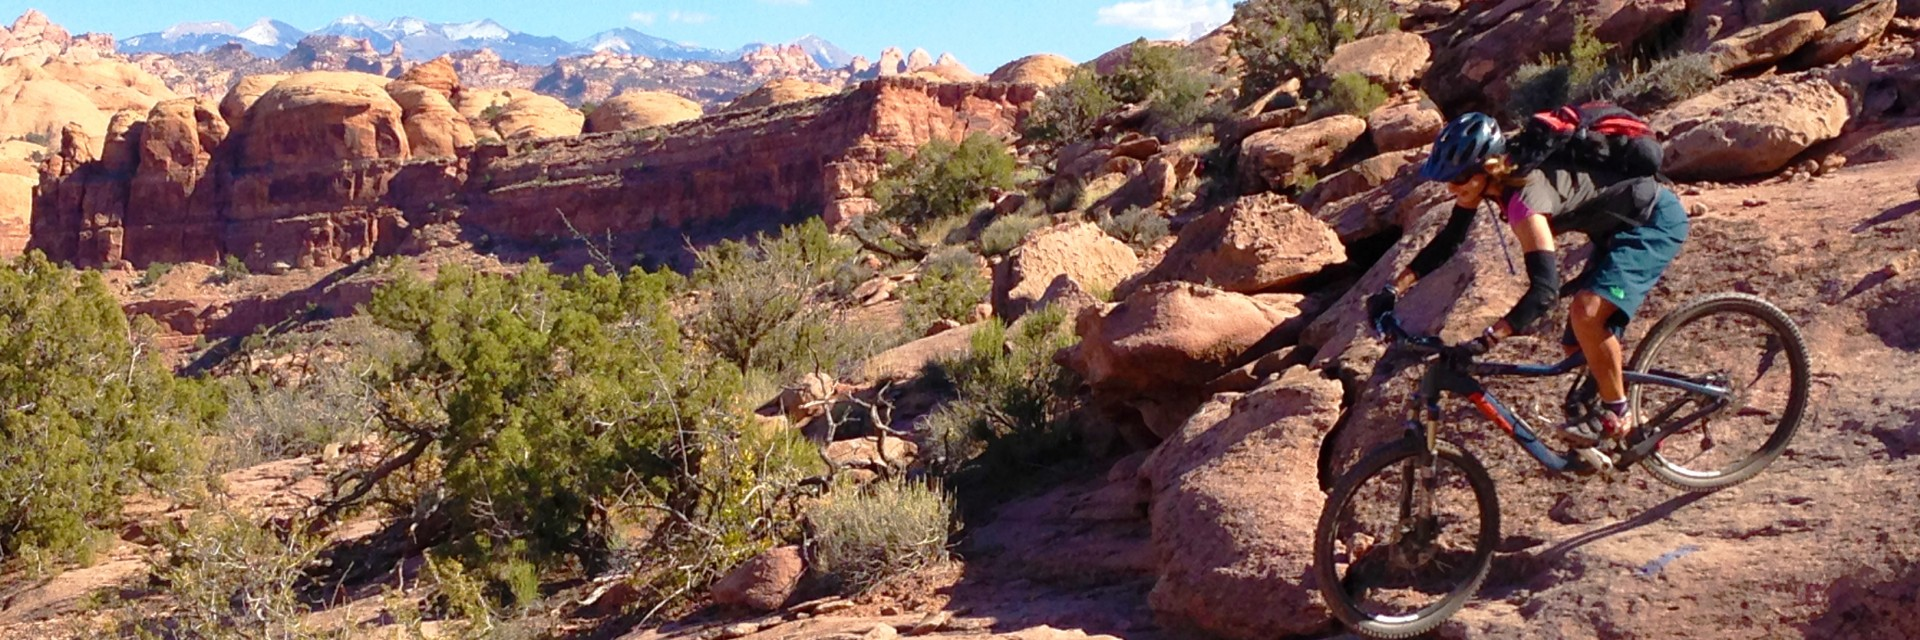 Amasa Back Trail, west of Moab UT, La Sal Mountains on horizon